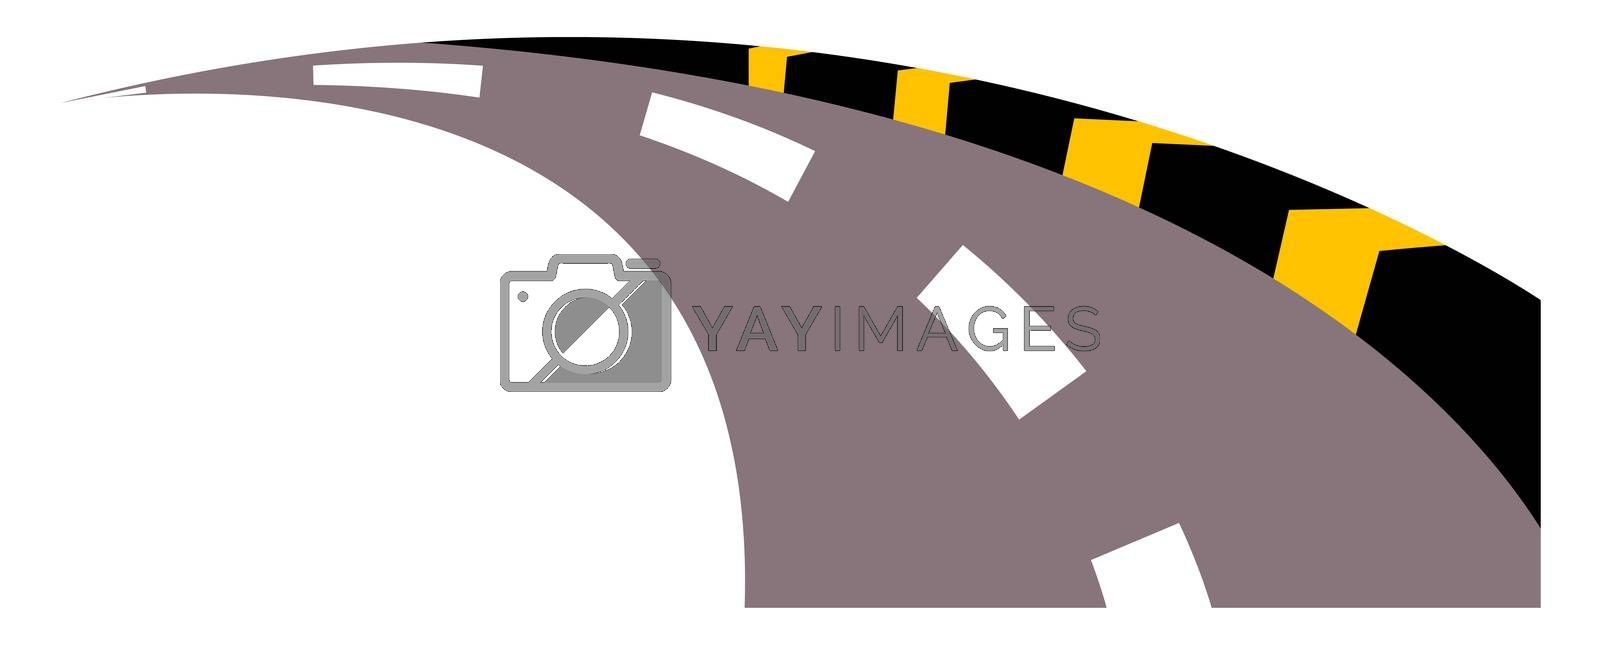 Street road, illustration, vector on white background